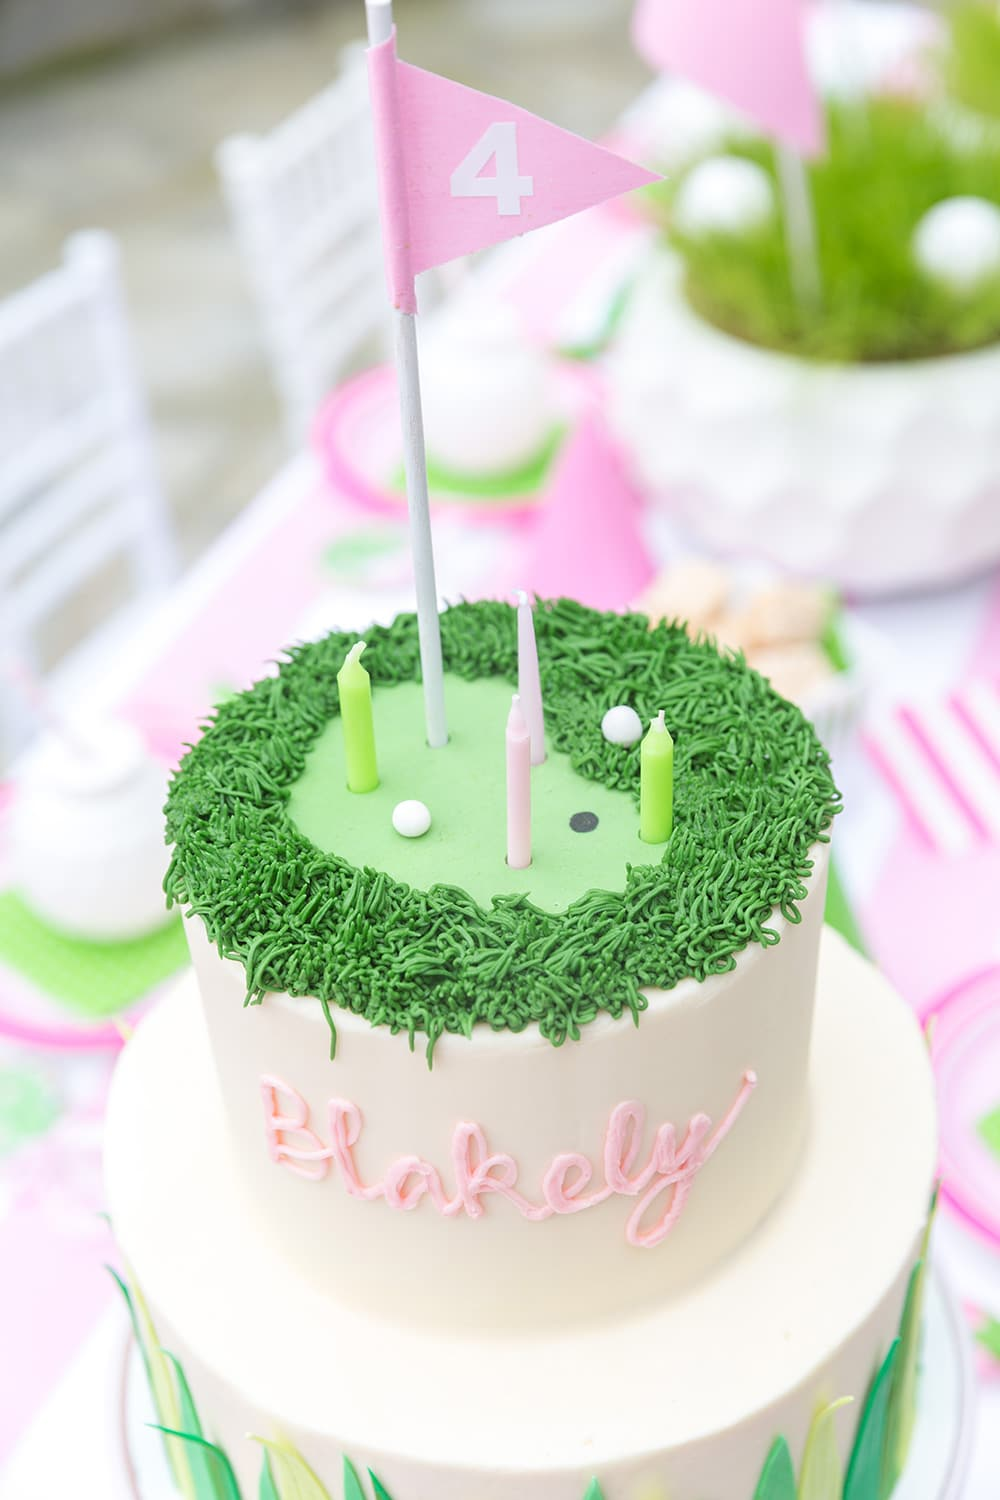 Golf Cake for Birthday Party